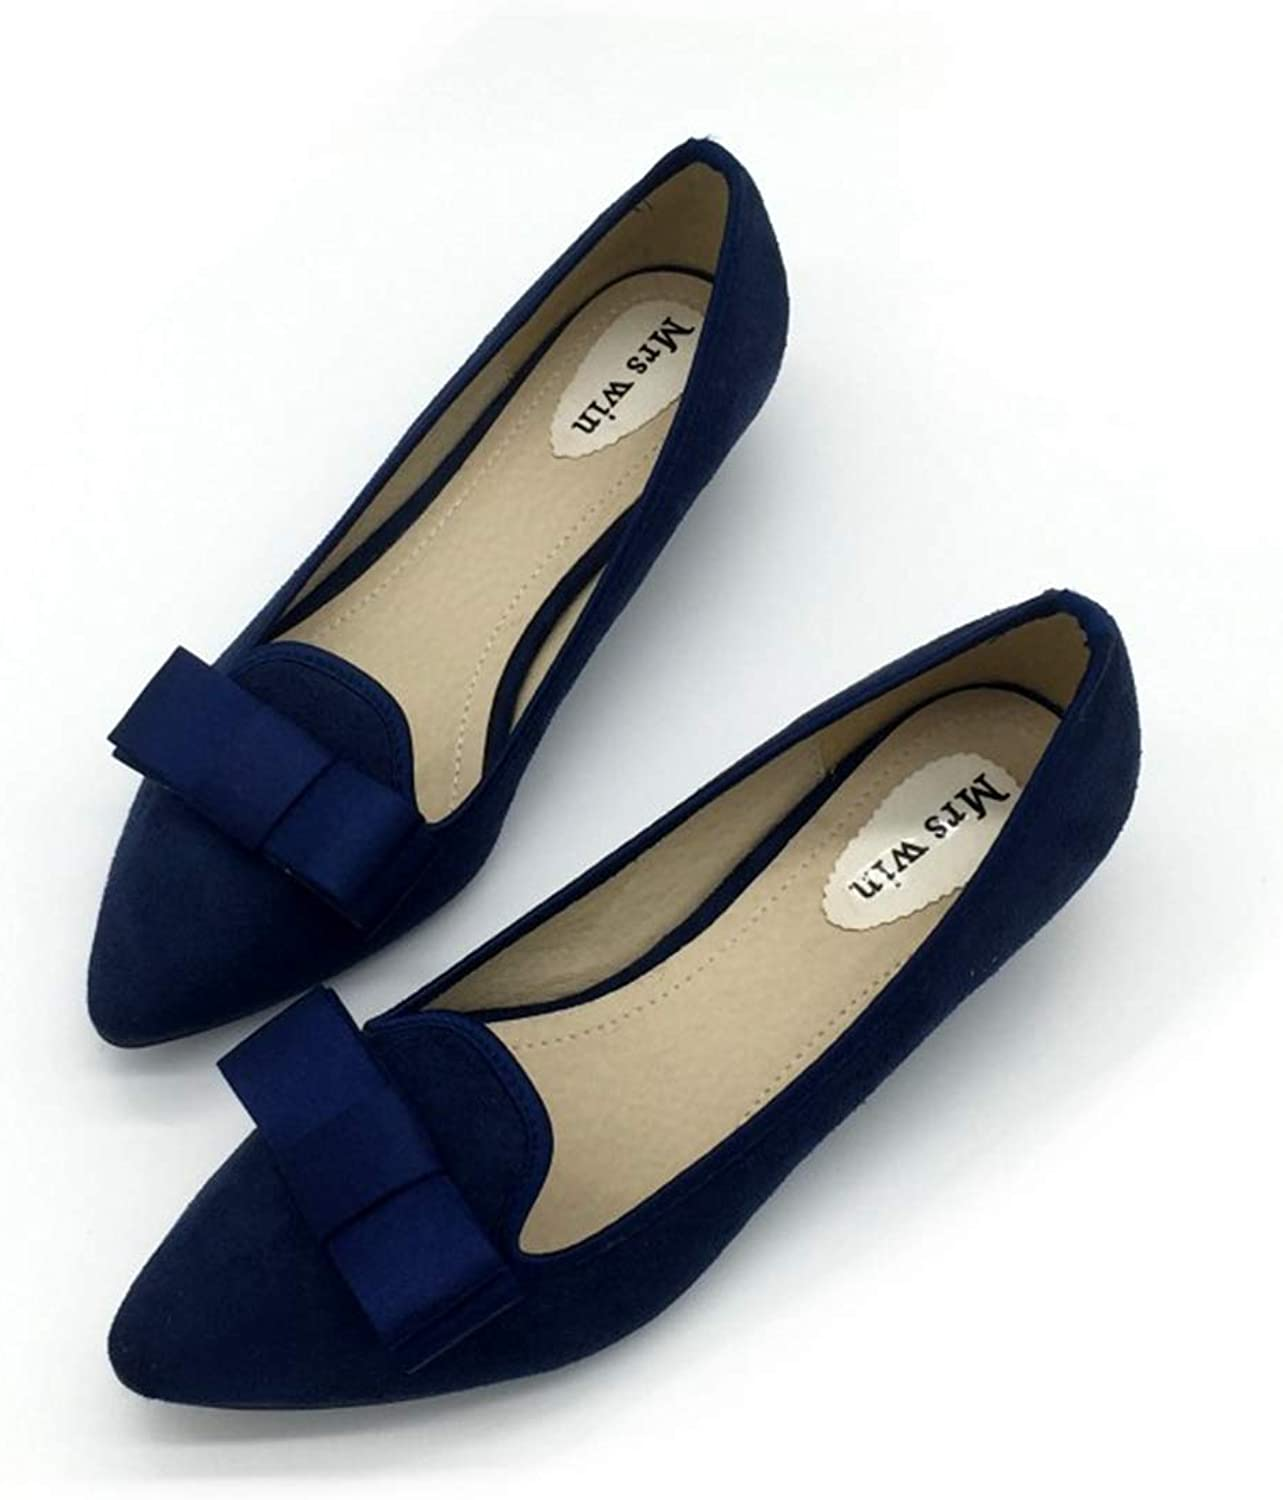 Owen Moll Women Pumps, Sexy Solid colors Flock Bowtie Pointed Toe Party Work shoes